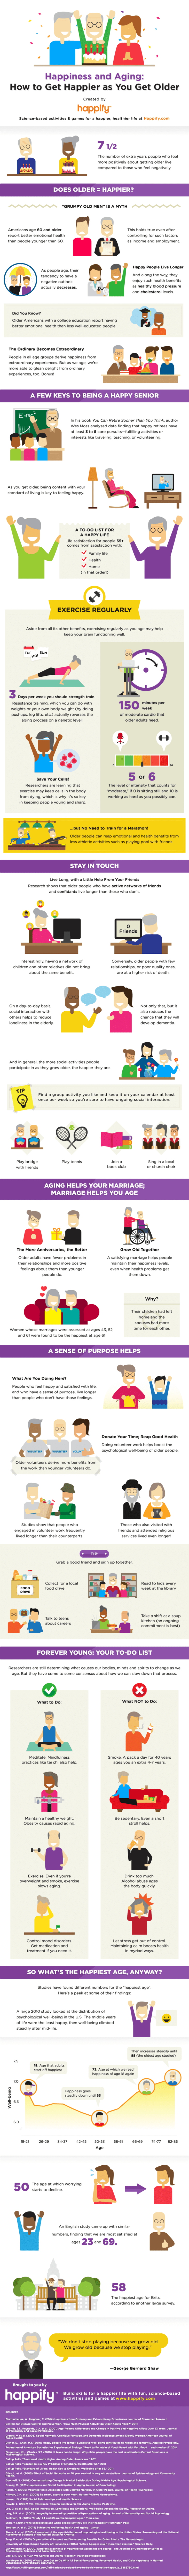 How To Get Happier As You Get Older (Infographic)